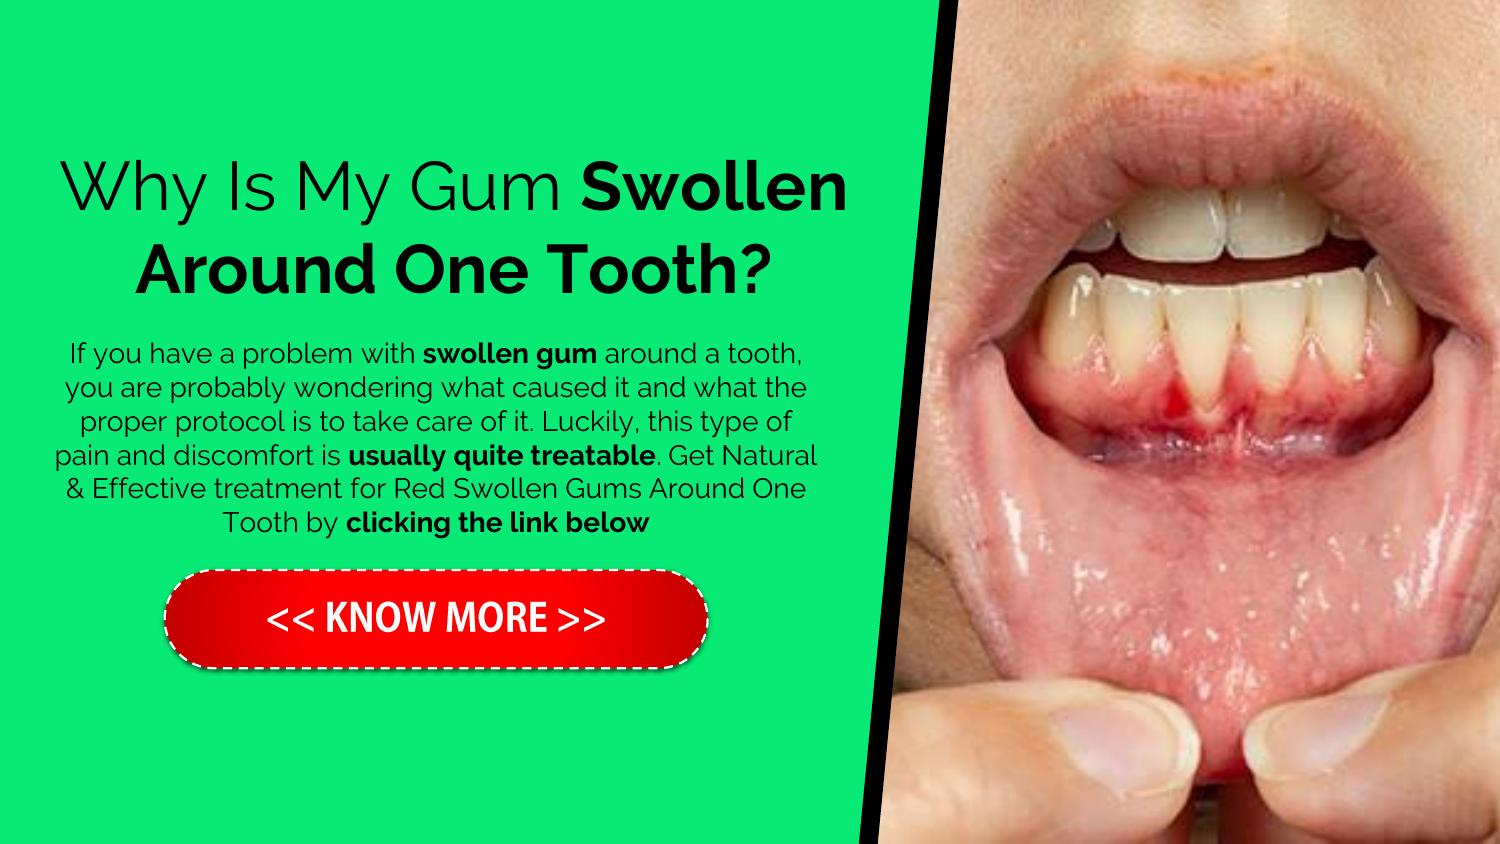 Why Is My Gum Swollen Around One Tooth